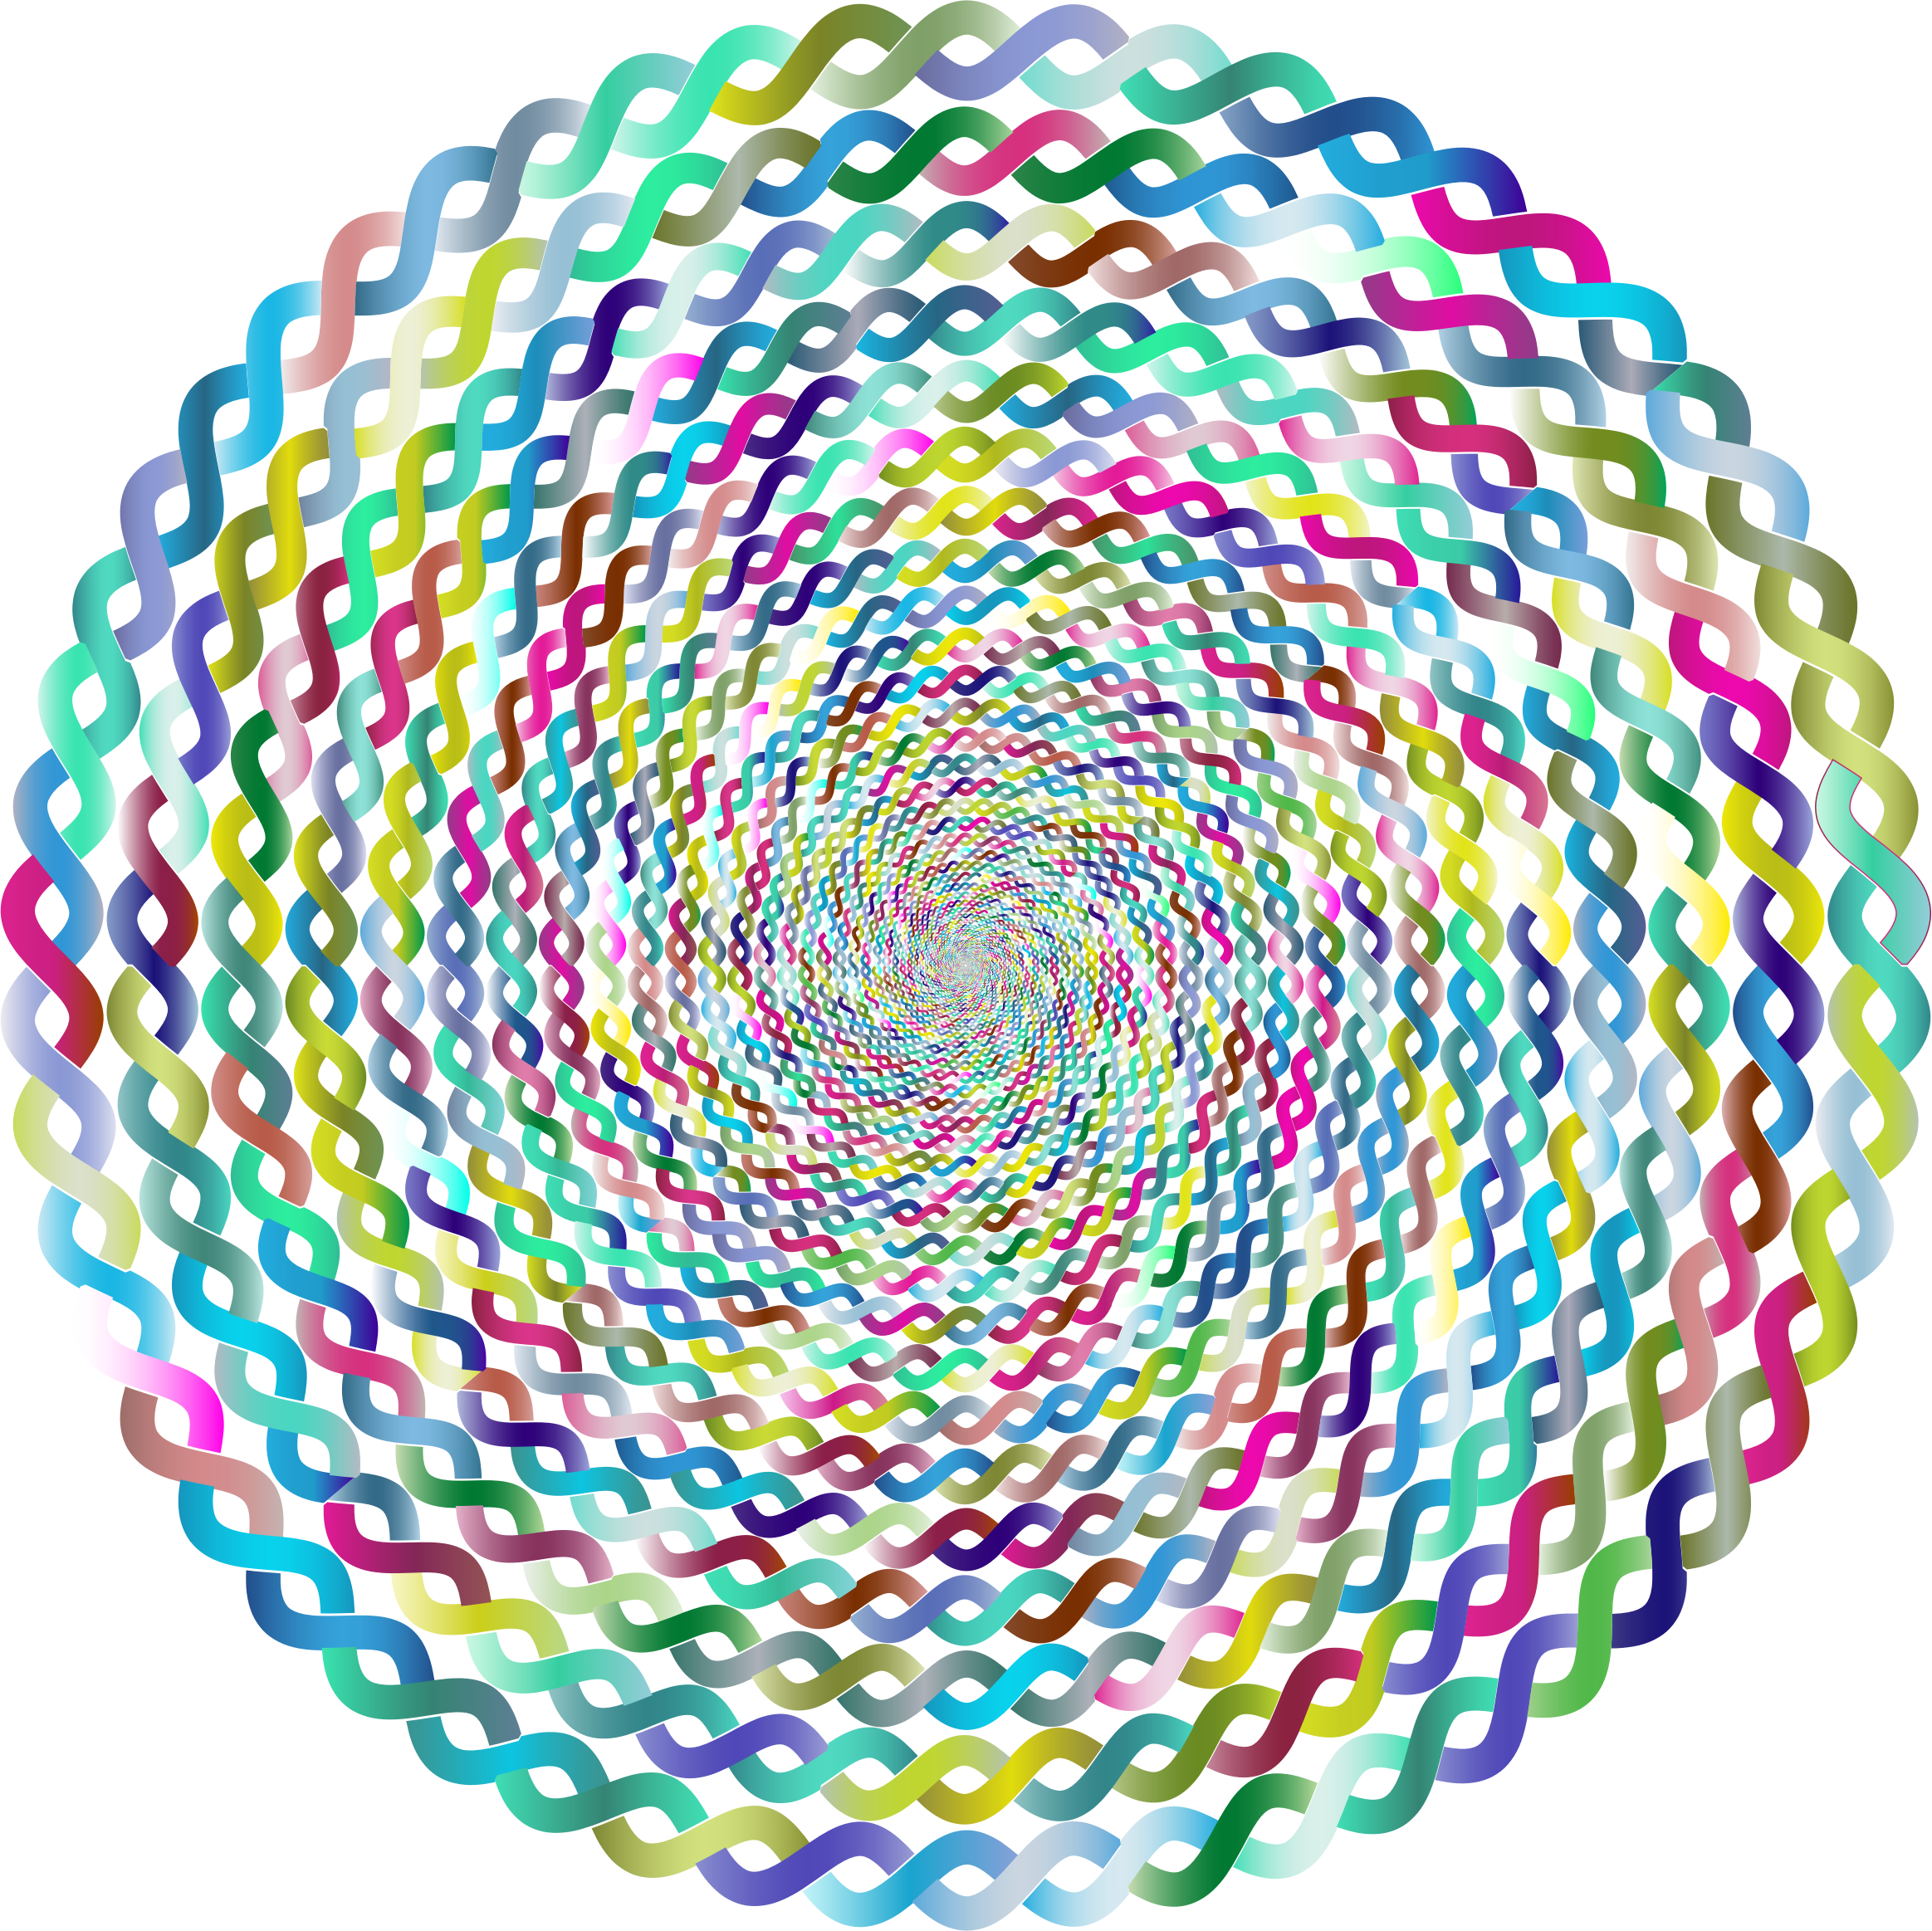 Prismatic Intertwined Circle Vortex 3 No Background by GDJ